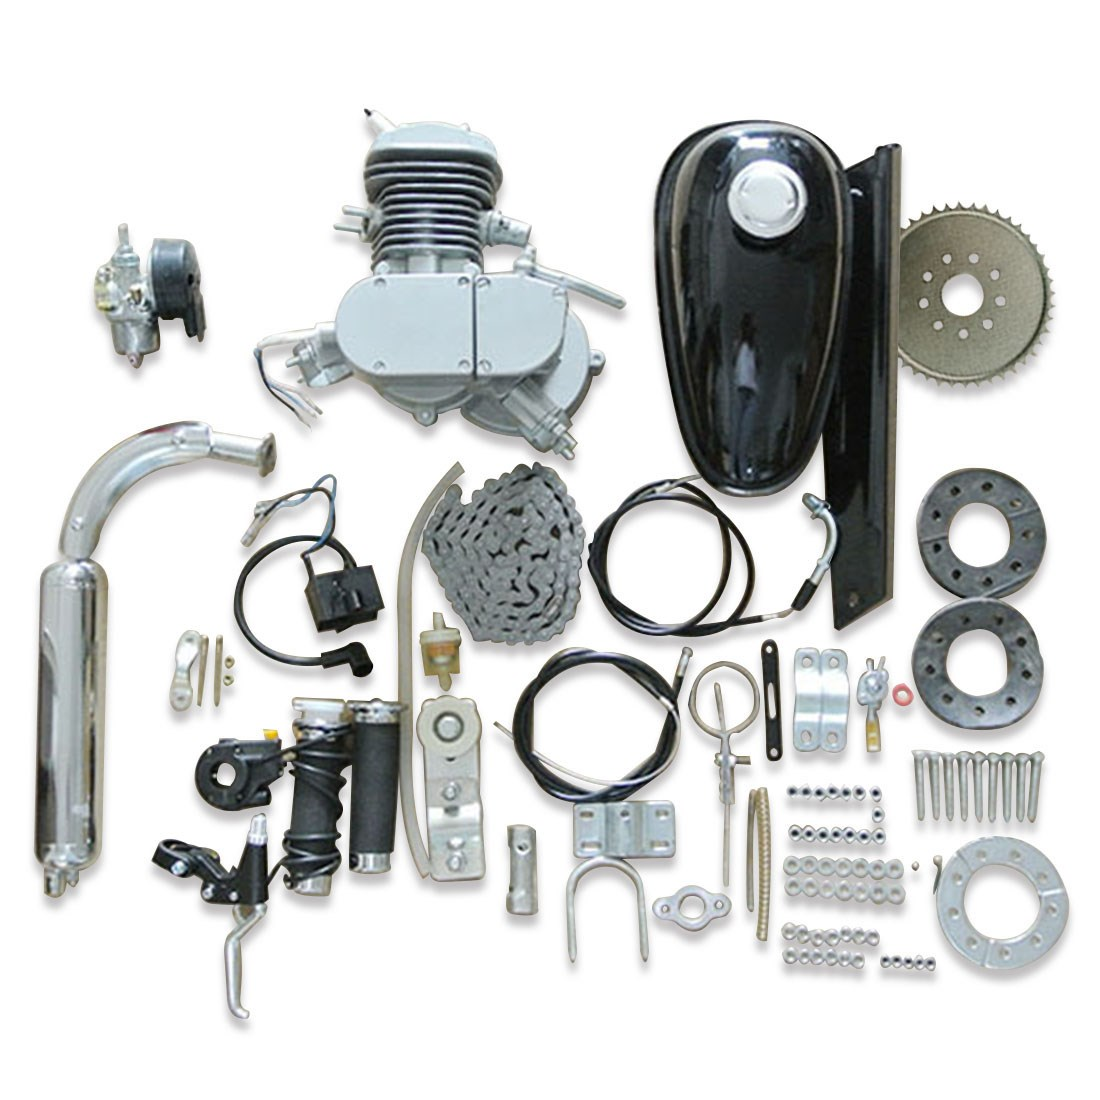 Bicycle Repair Parts : Replacement parts fits for cc stroke engine motorized